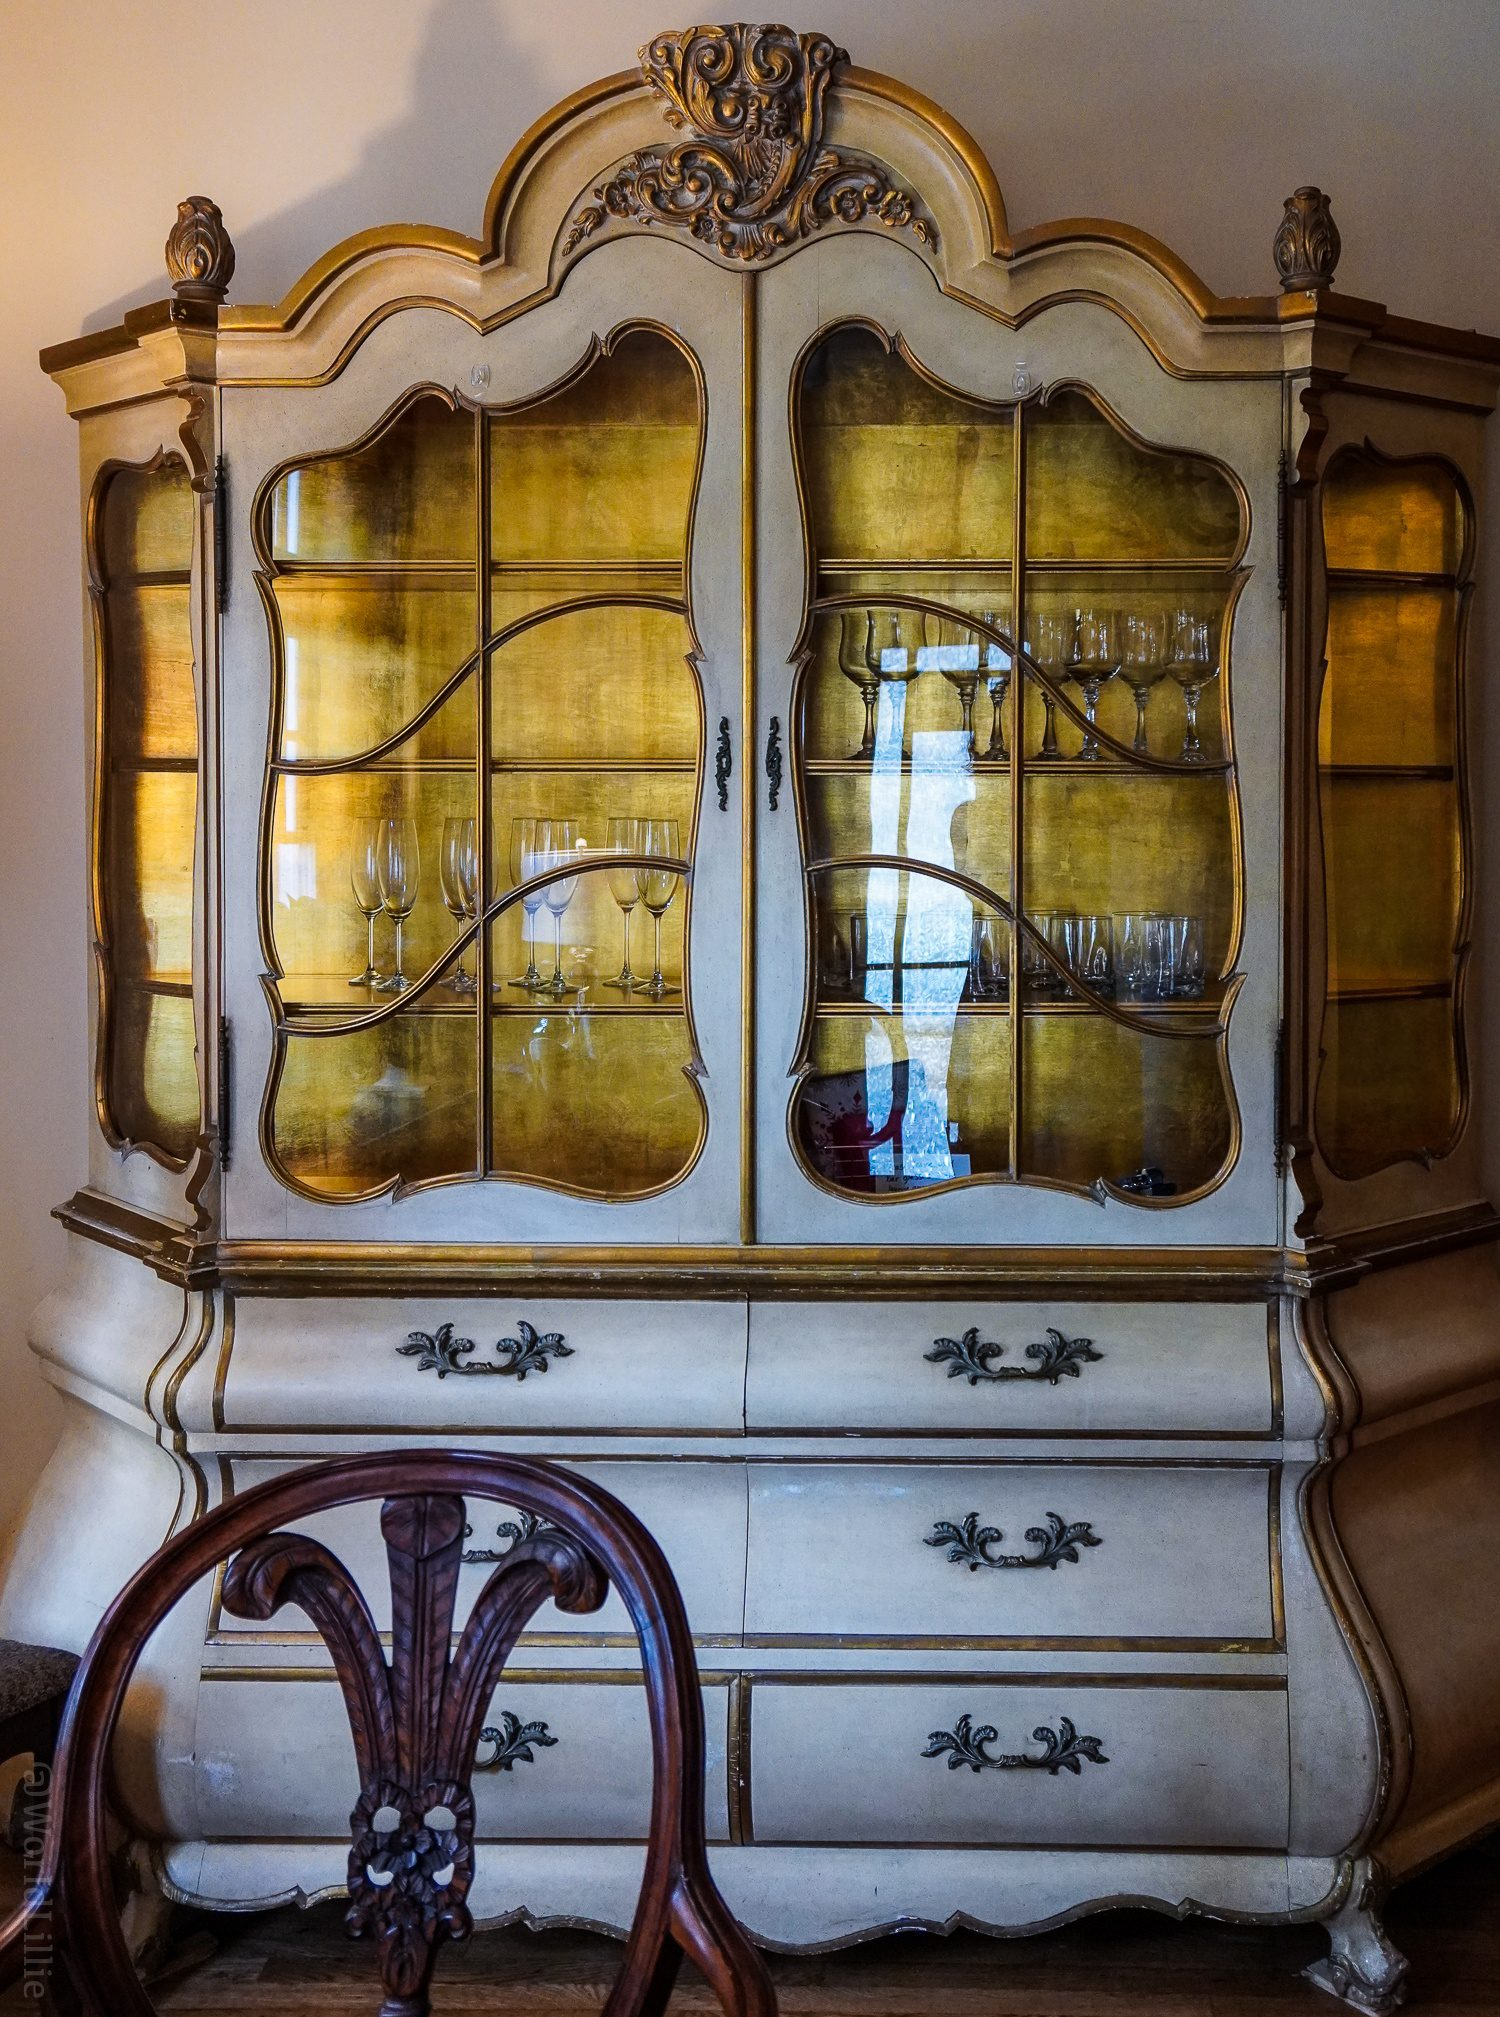 A magical looking piece of furniture in the central sitting room.